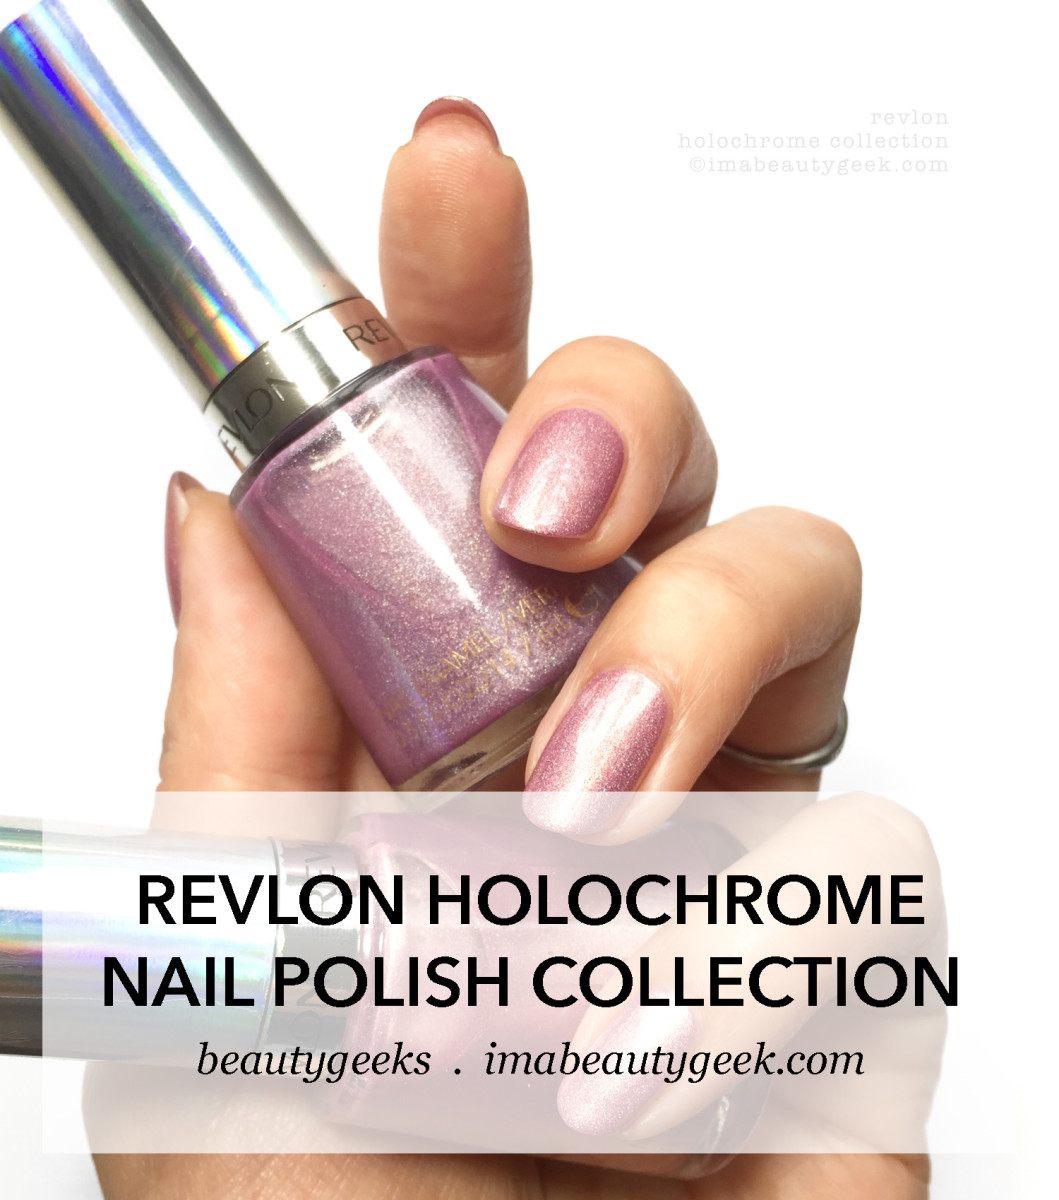 Revlon Holochrome Nail Polish swatches-Manigeek-BEAUTYGEEKS